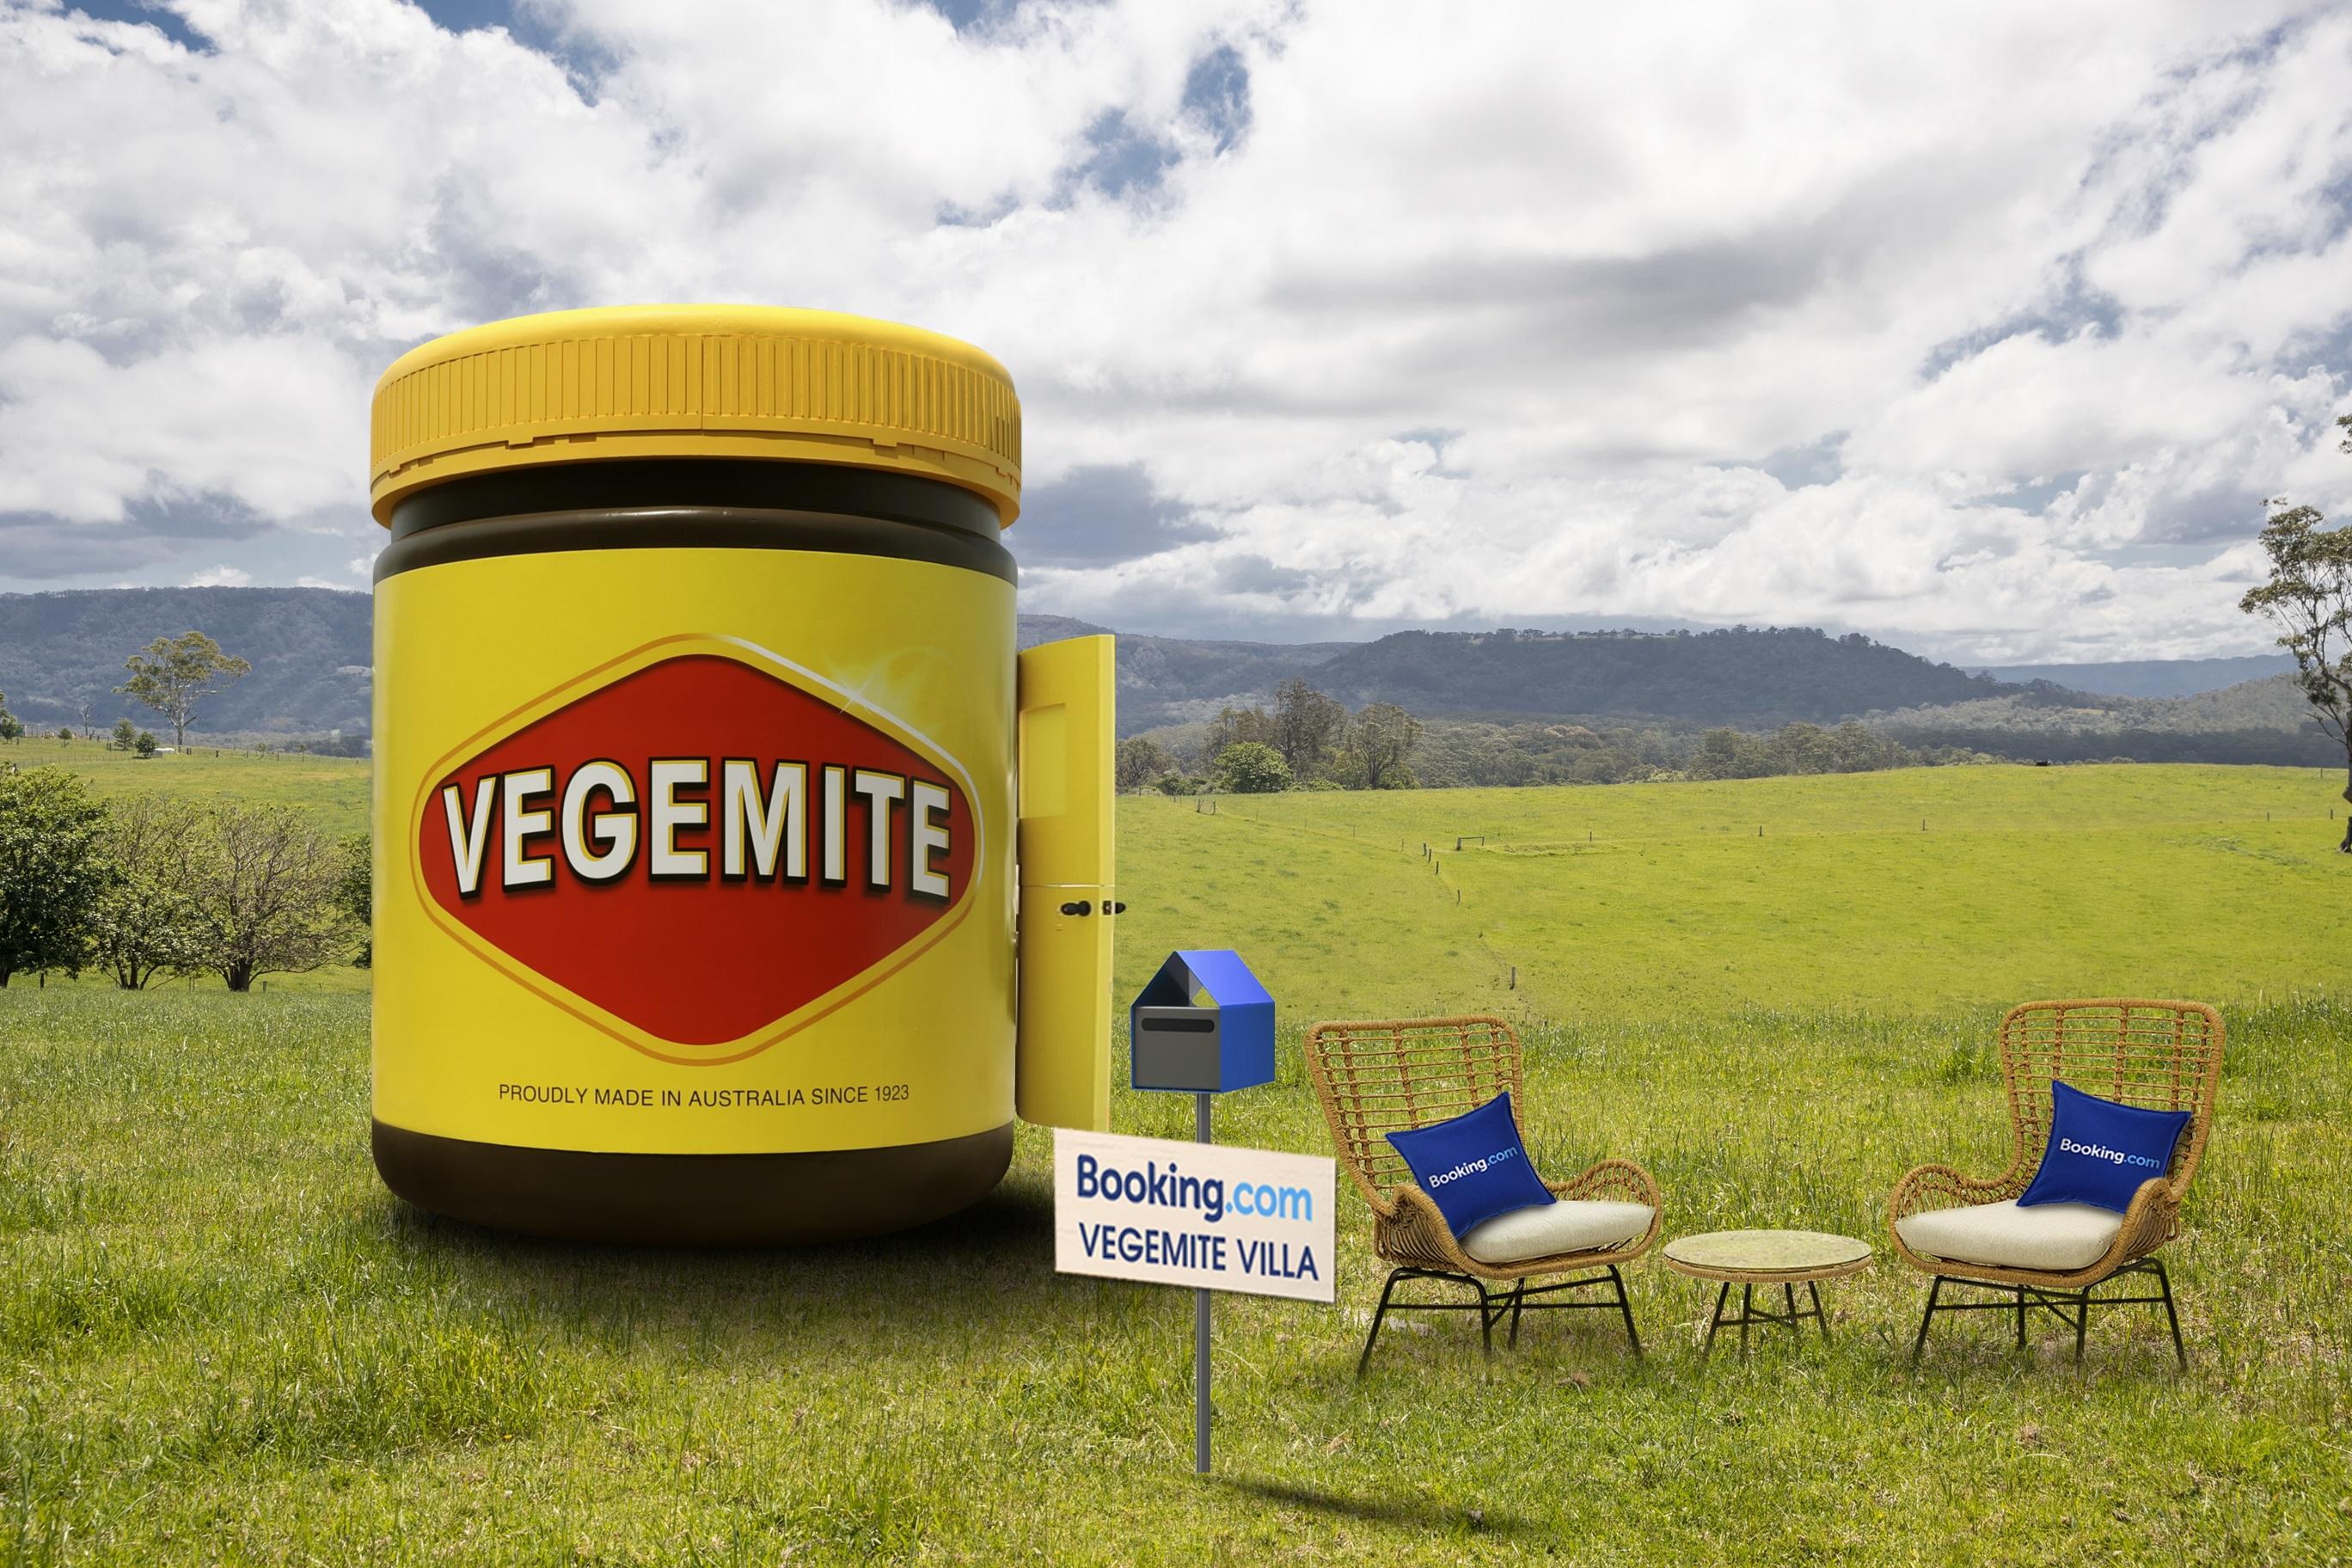 Booking.com lists the most Aussie accommodation ever… a Vegemite Villa!